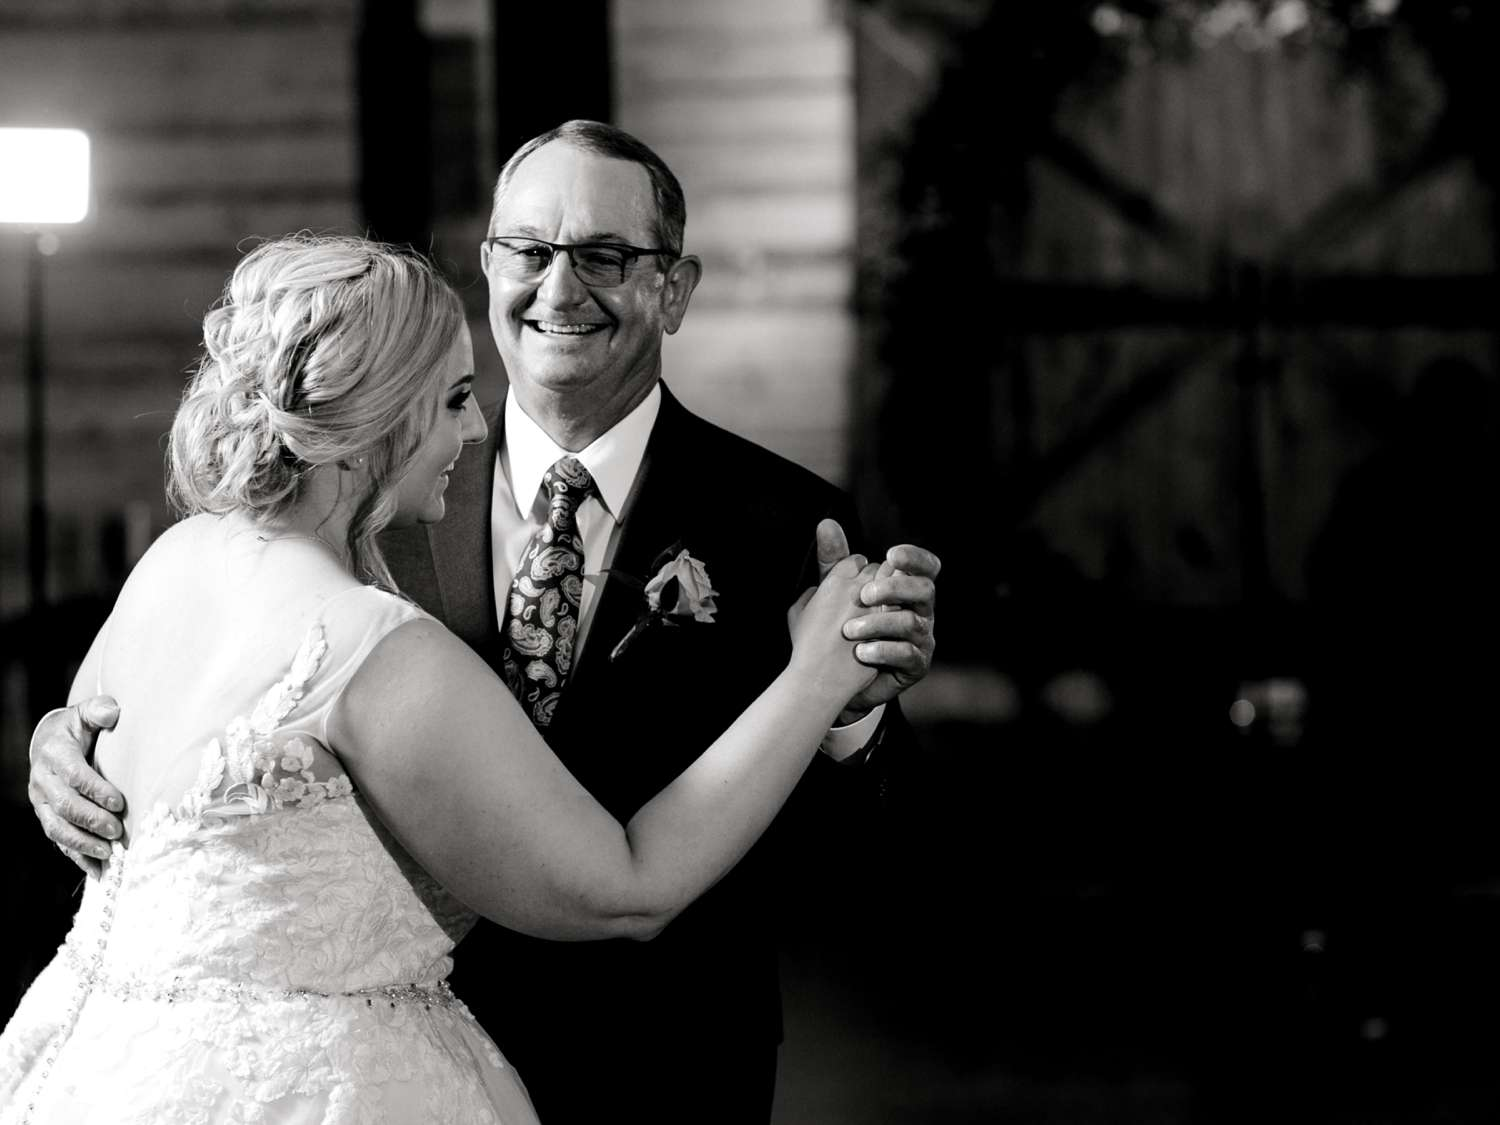 TIMMI+JORDAN_IRVINE_EBERLEY_BROOKS_EVENTS_ALLEEJ_WEDDINGS_0118.jpg